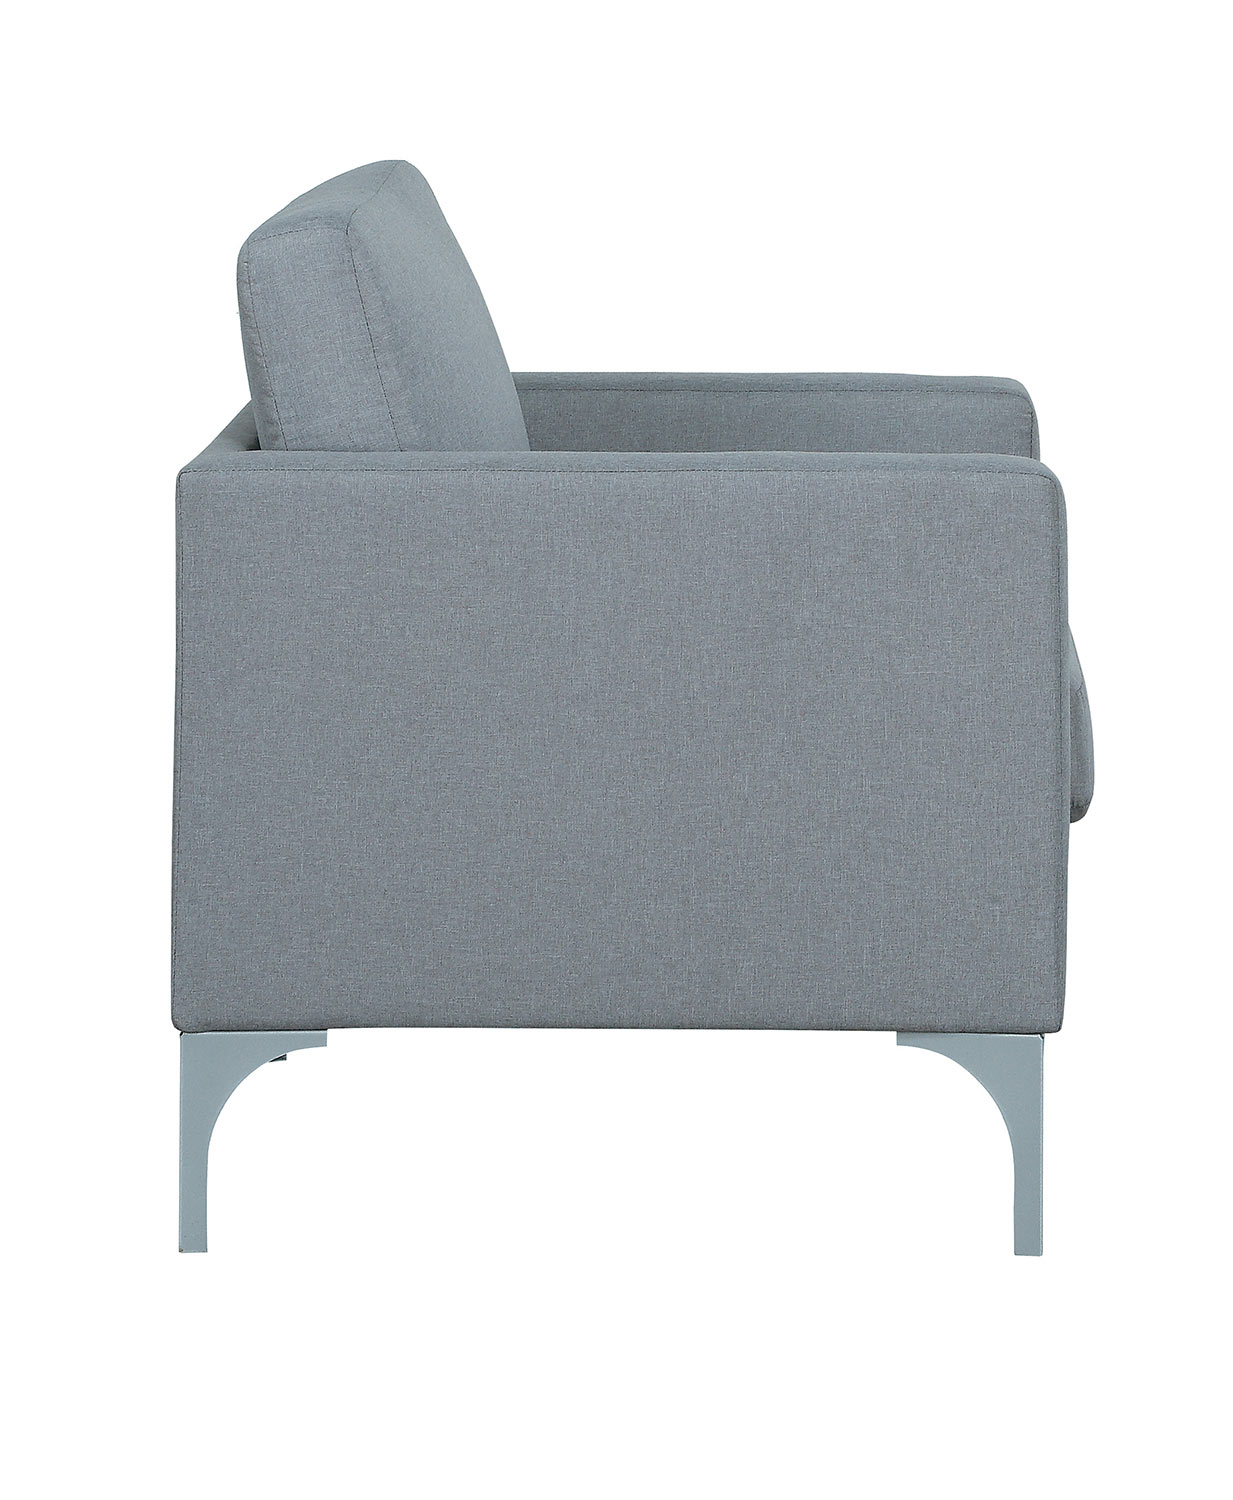 Homelegance Soho Chair - Light Gray